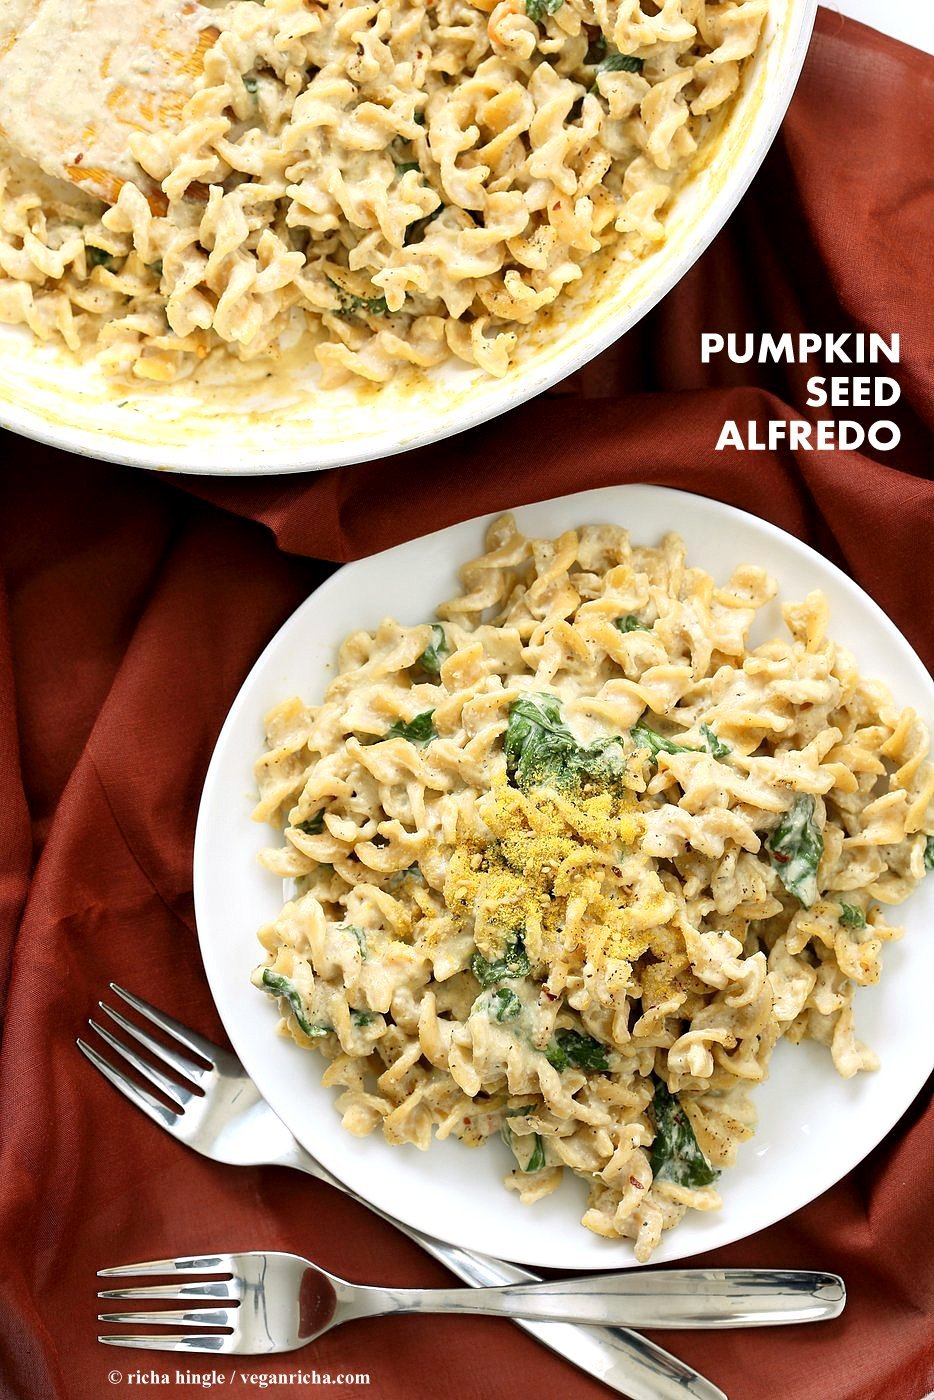 Pumpkin seed alfredo fusilli nut free vegan alfredo recipe vegan nut free vegan alfredo recipe easy cashew free alfredo forumfinder Image collections